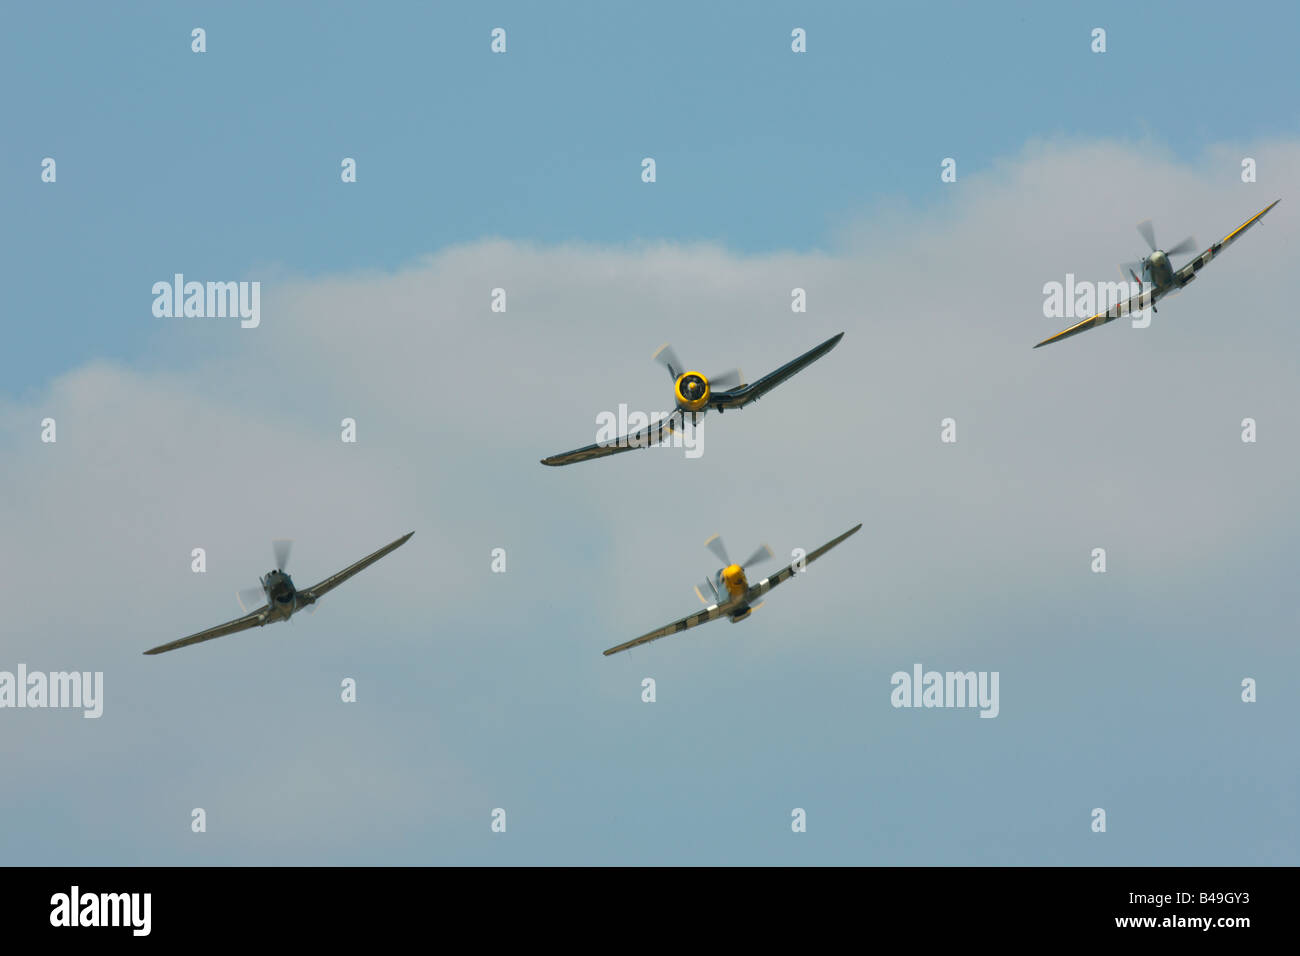 Spitfire,Corsair, Warhawk, Mustang in formation - Stock Image